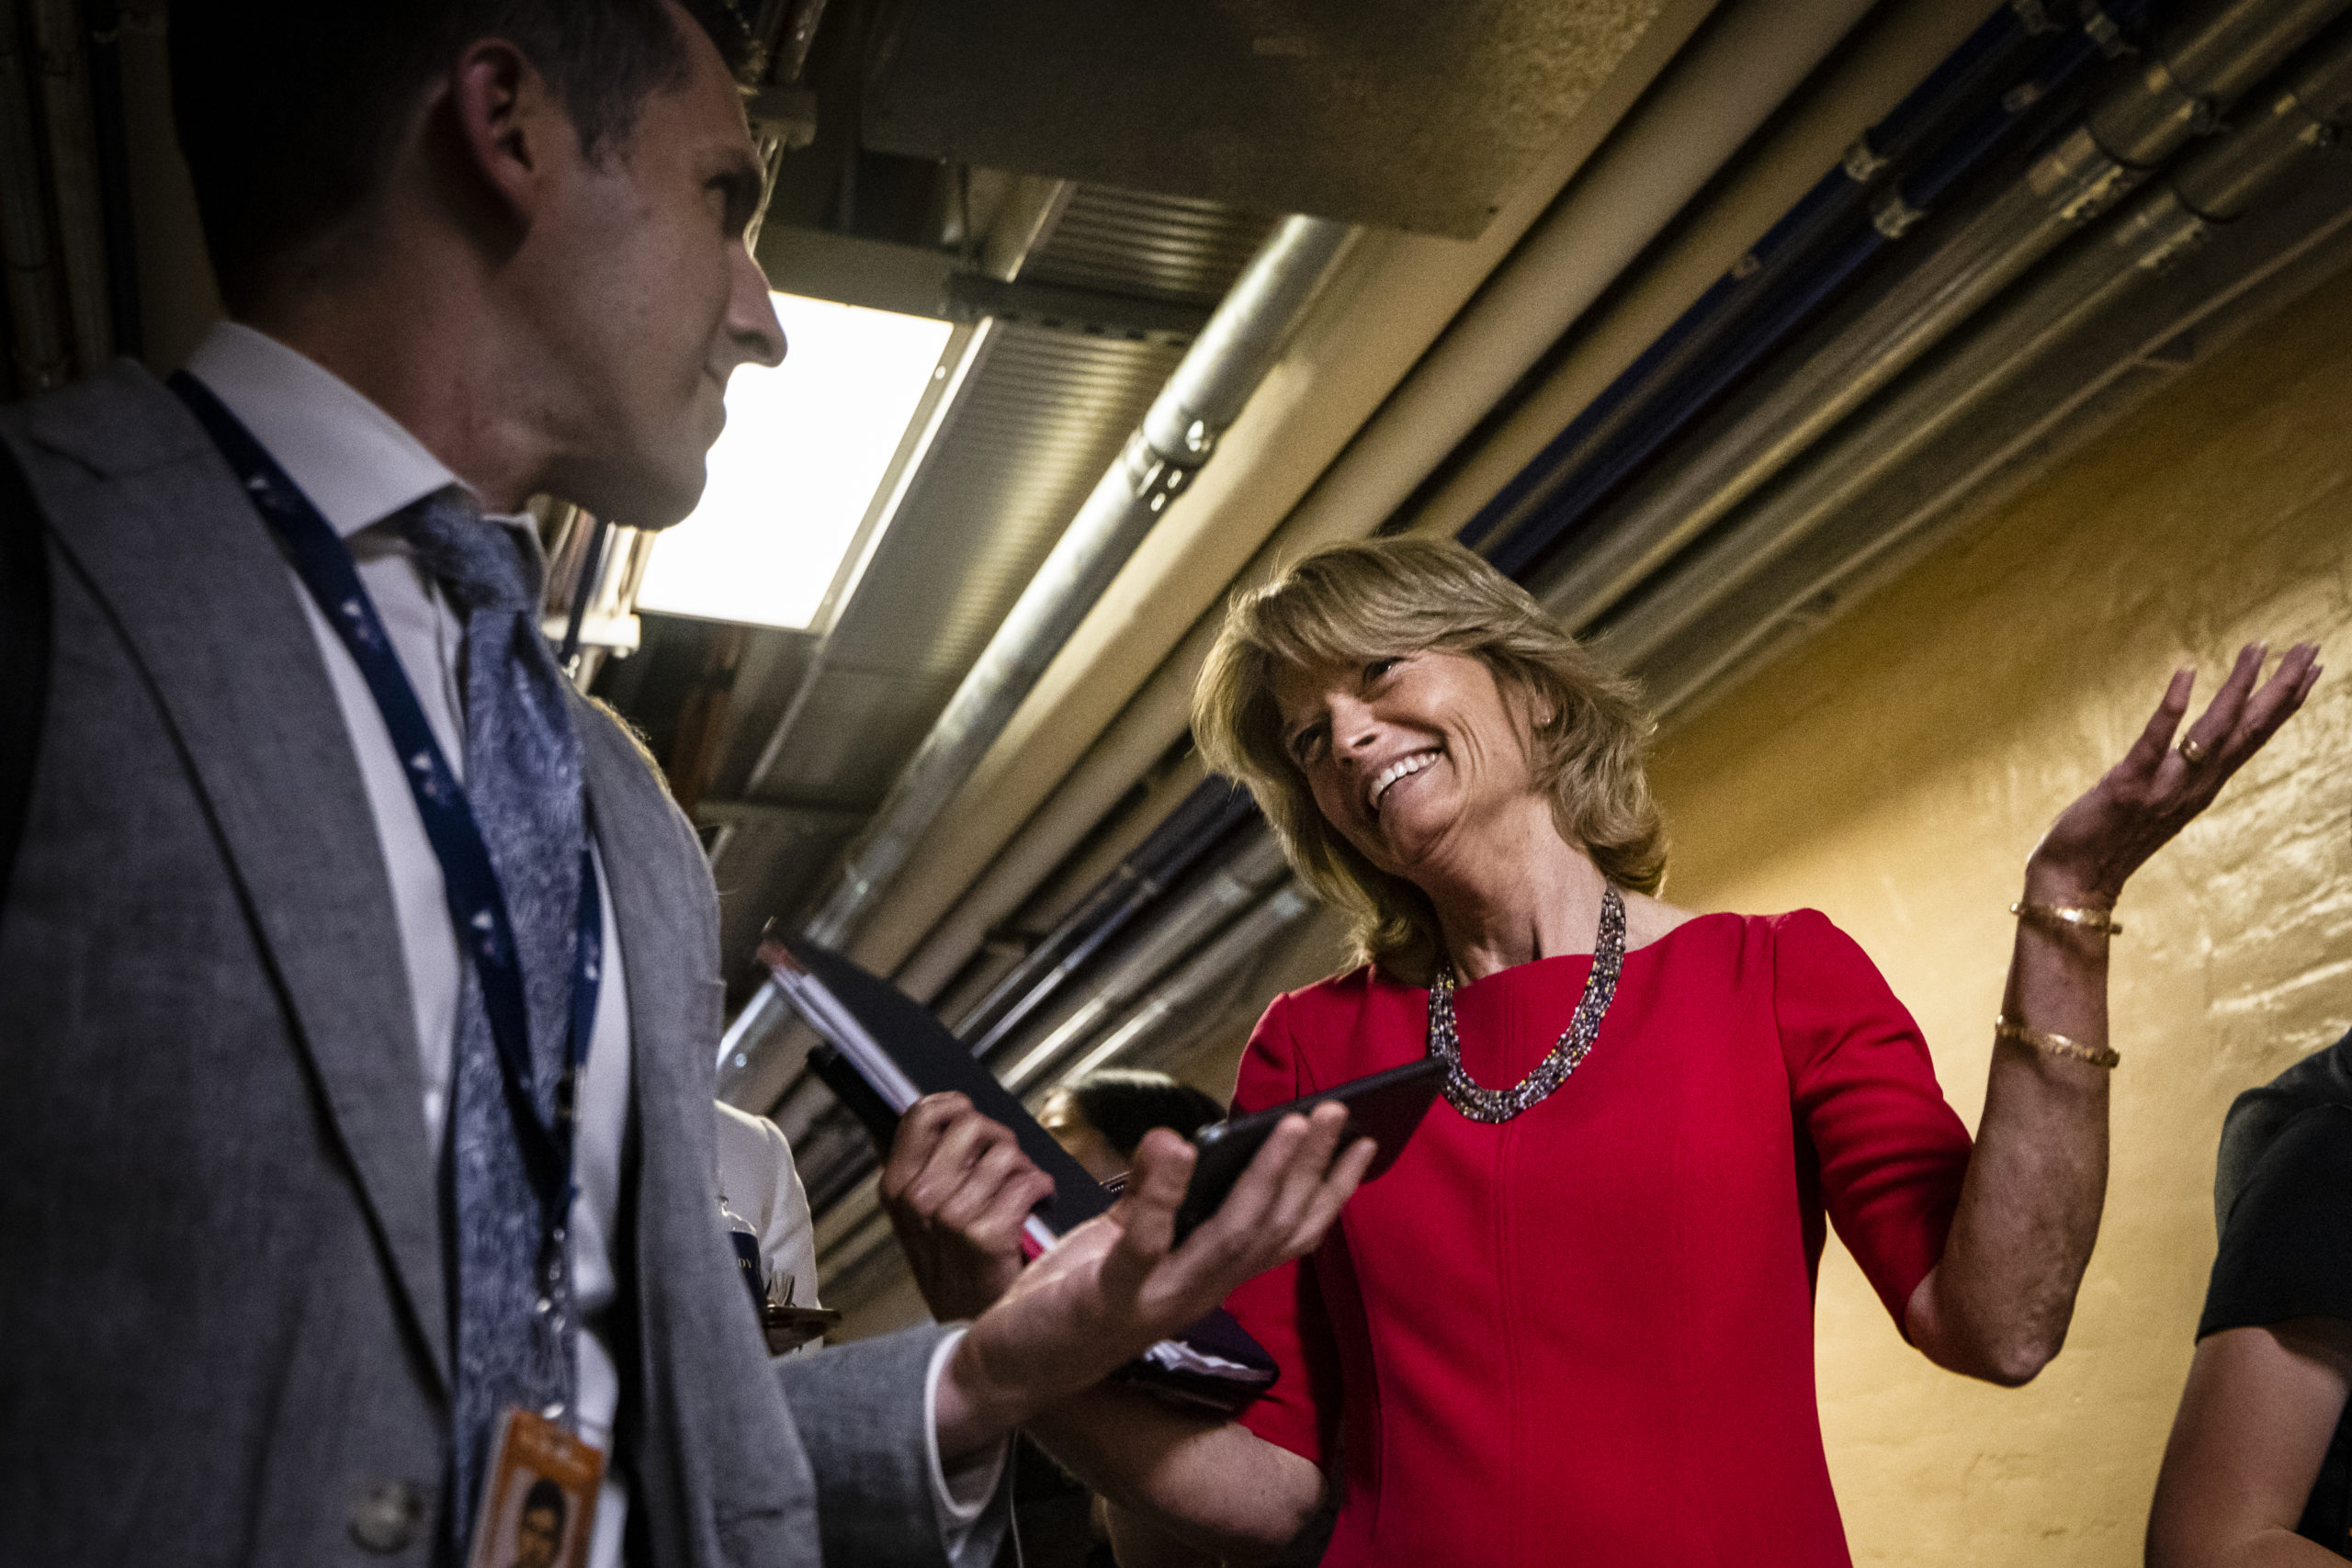 U.S. Sen. Lisa Murkowski (R-AK) reacts to questions from reporters as she leaves a bipartisan meeting on infrastructure in the basement of the U.S. Capitol building after the original talks fell through with the White House on June 8, 2021 in Washington, DC. (Samuel Corum/Getty Images)